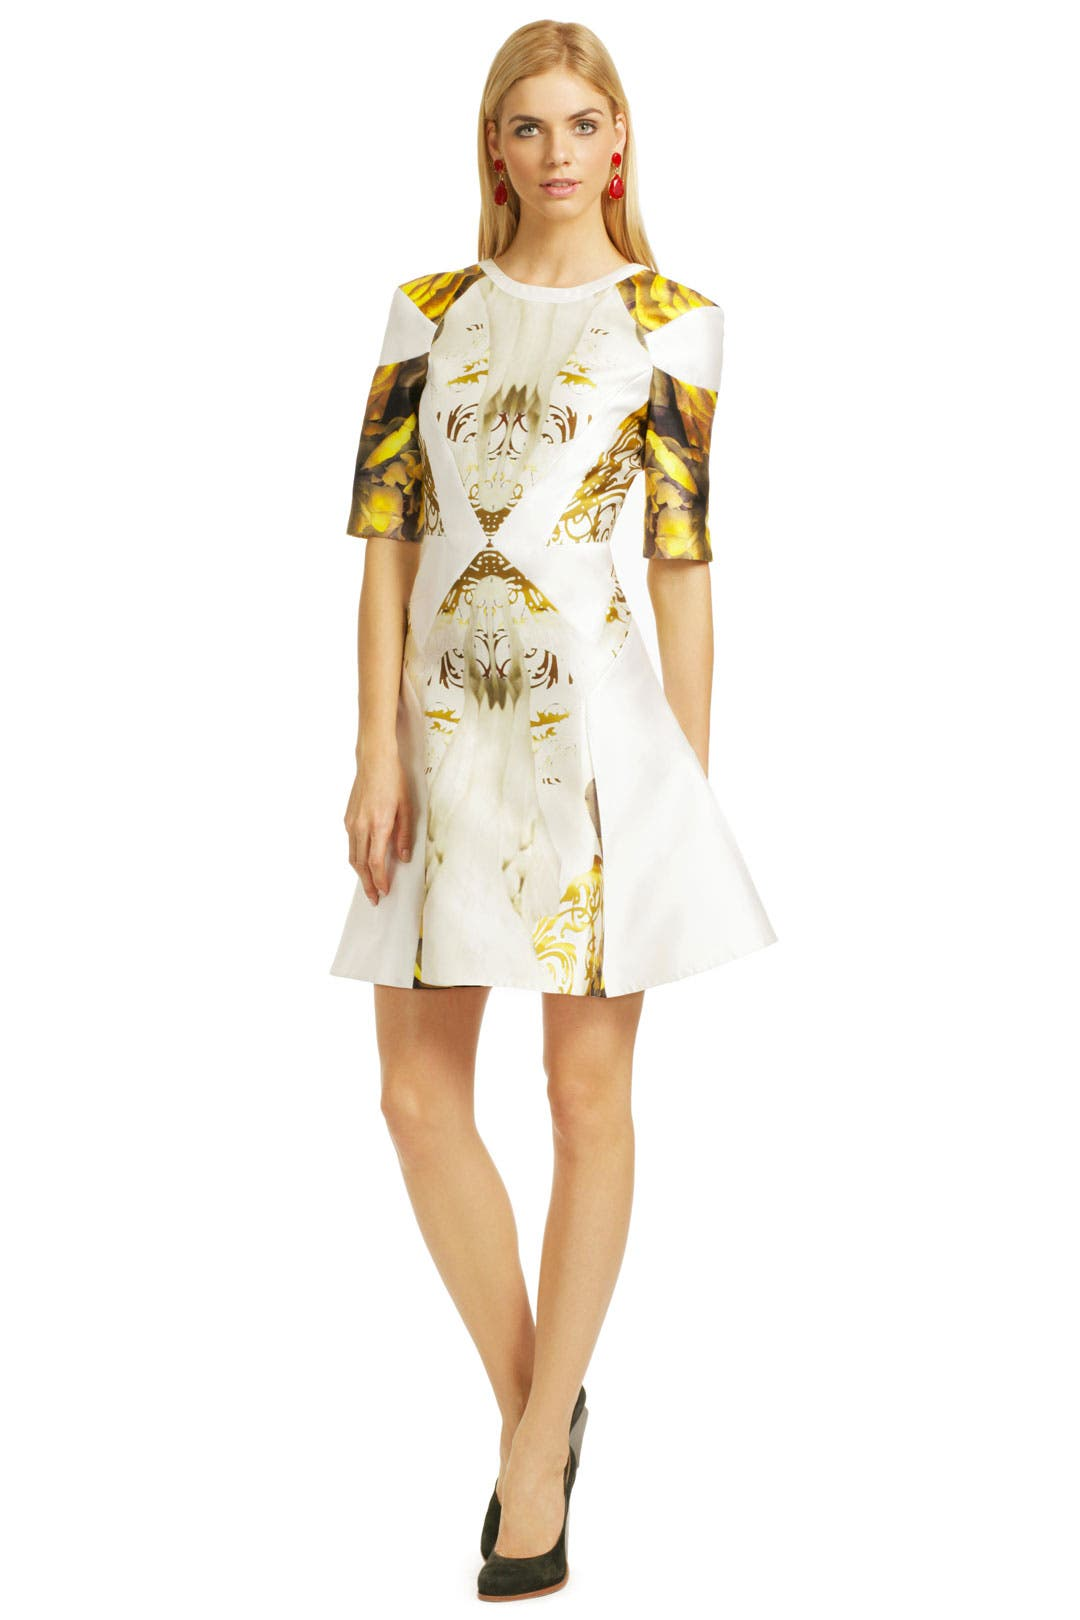 Dali Print Dress by Prabal Gurung